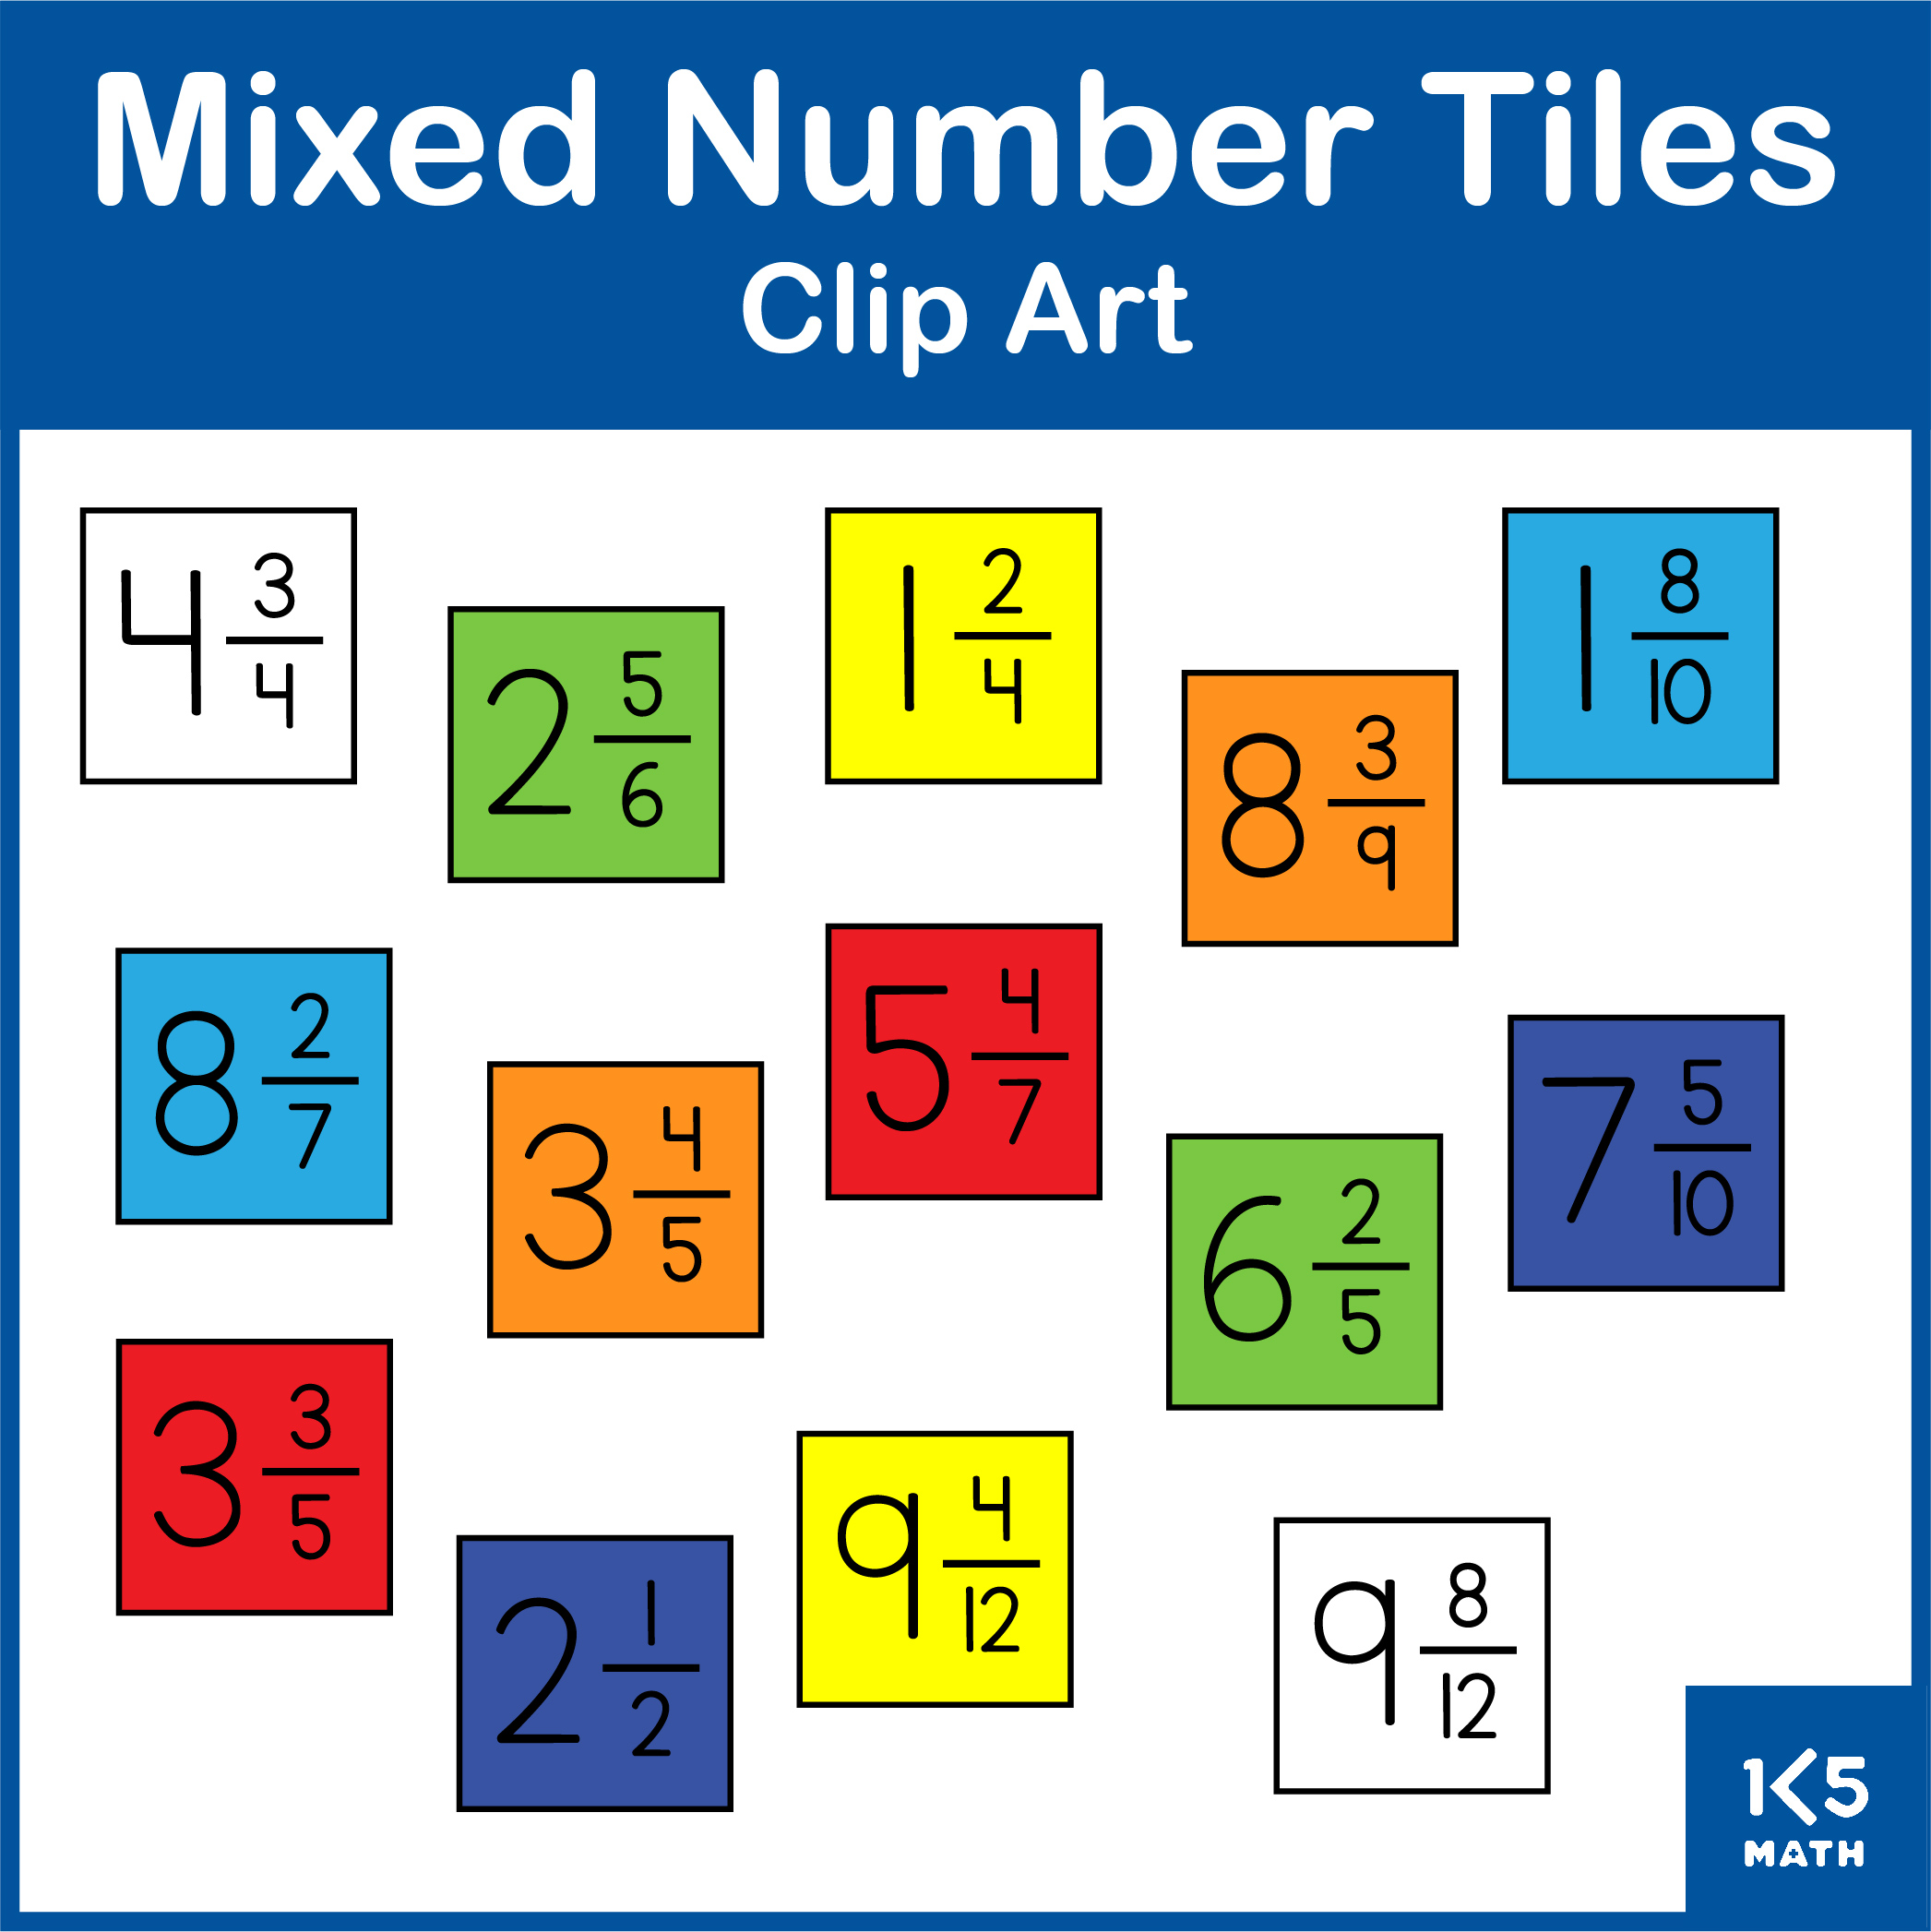 Mixed Number Tiles Clip Art